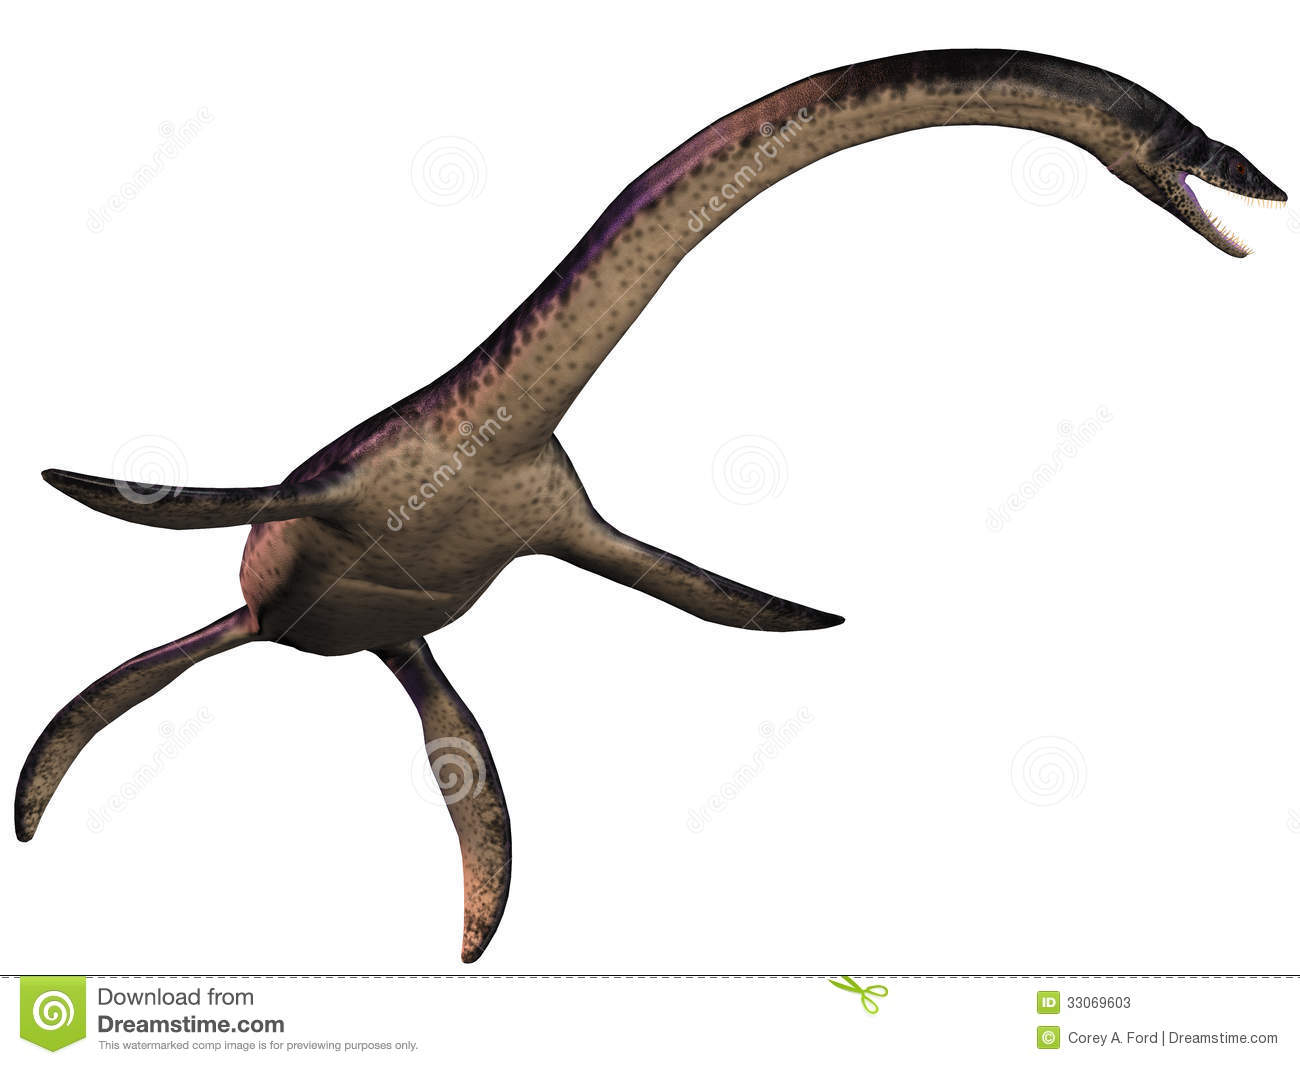 Plesiosaurus was a marine predatory reptile in the Jurassic Era.